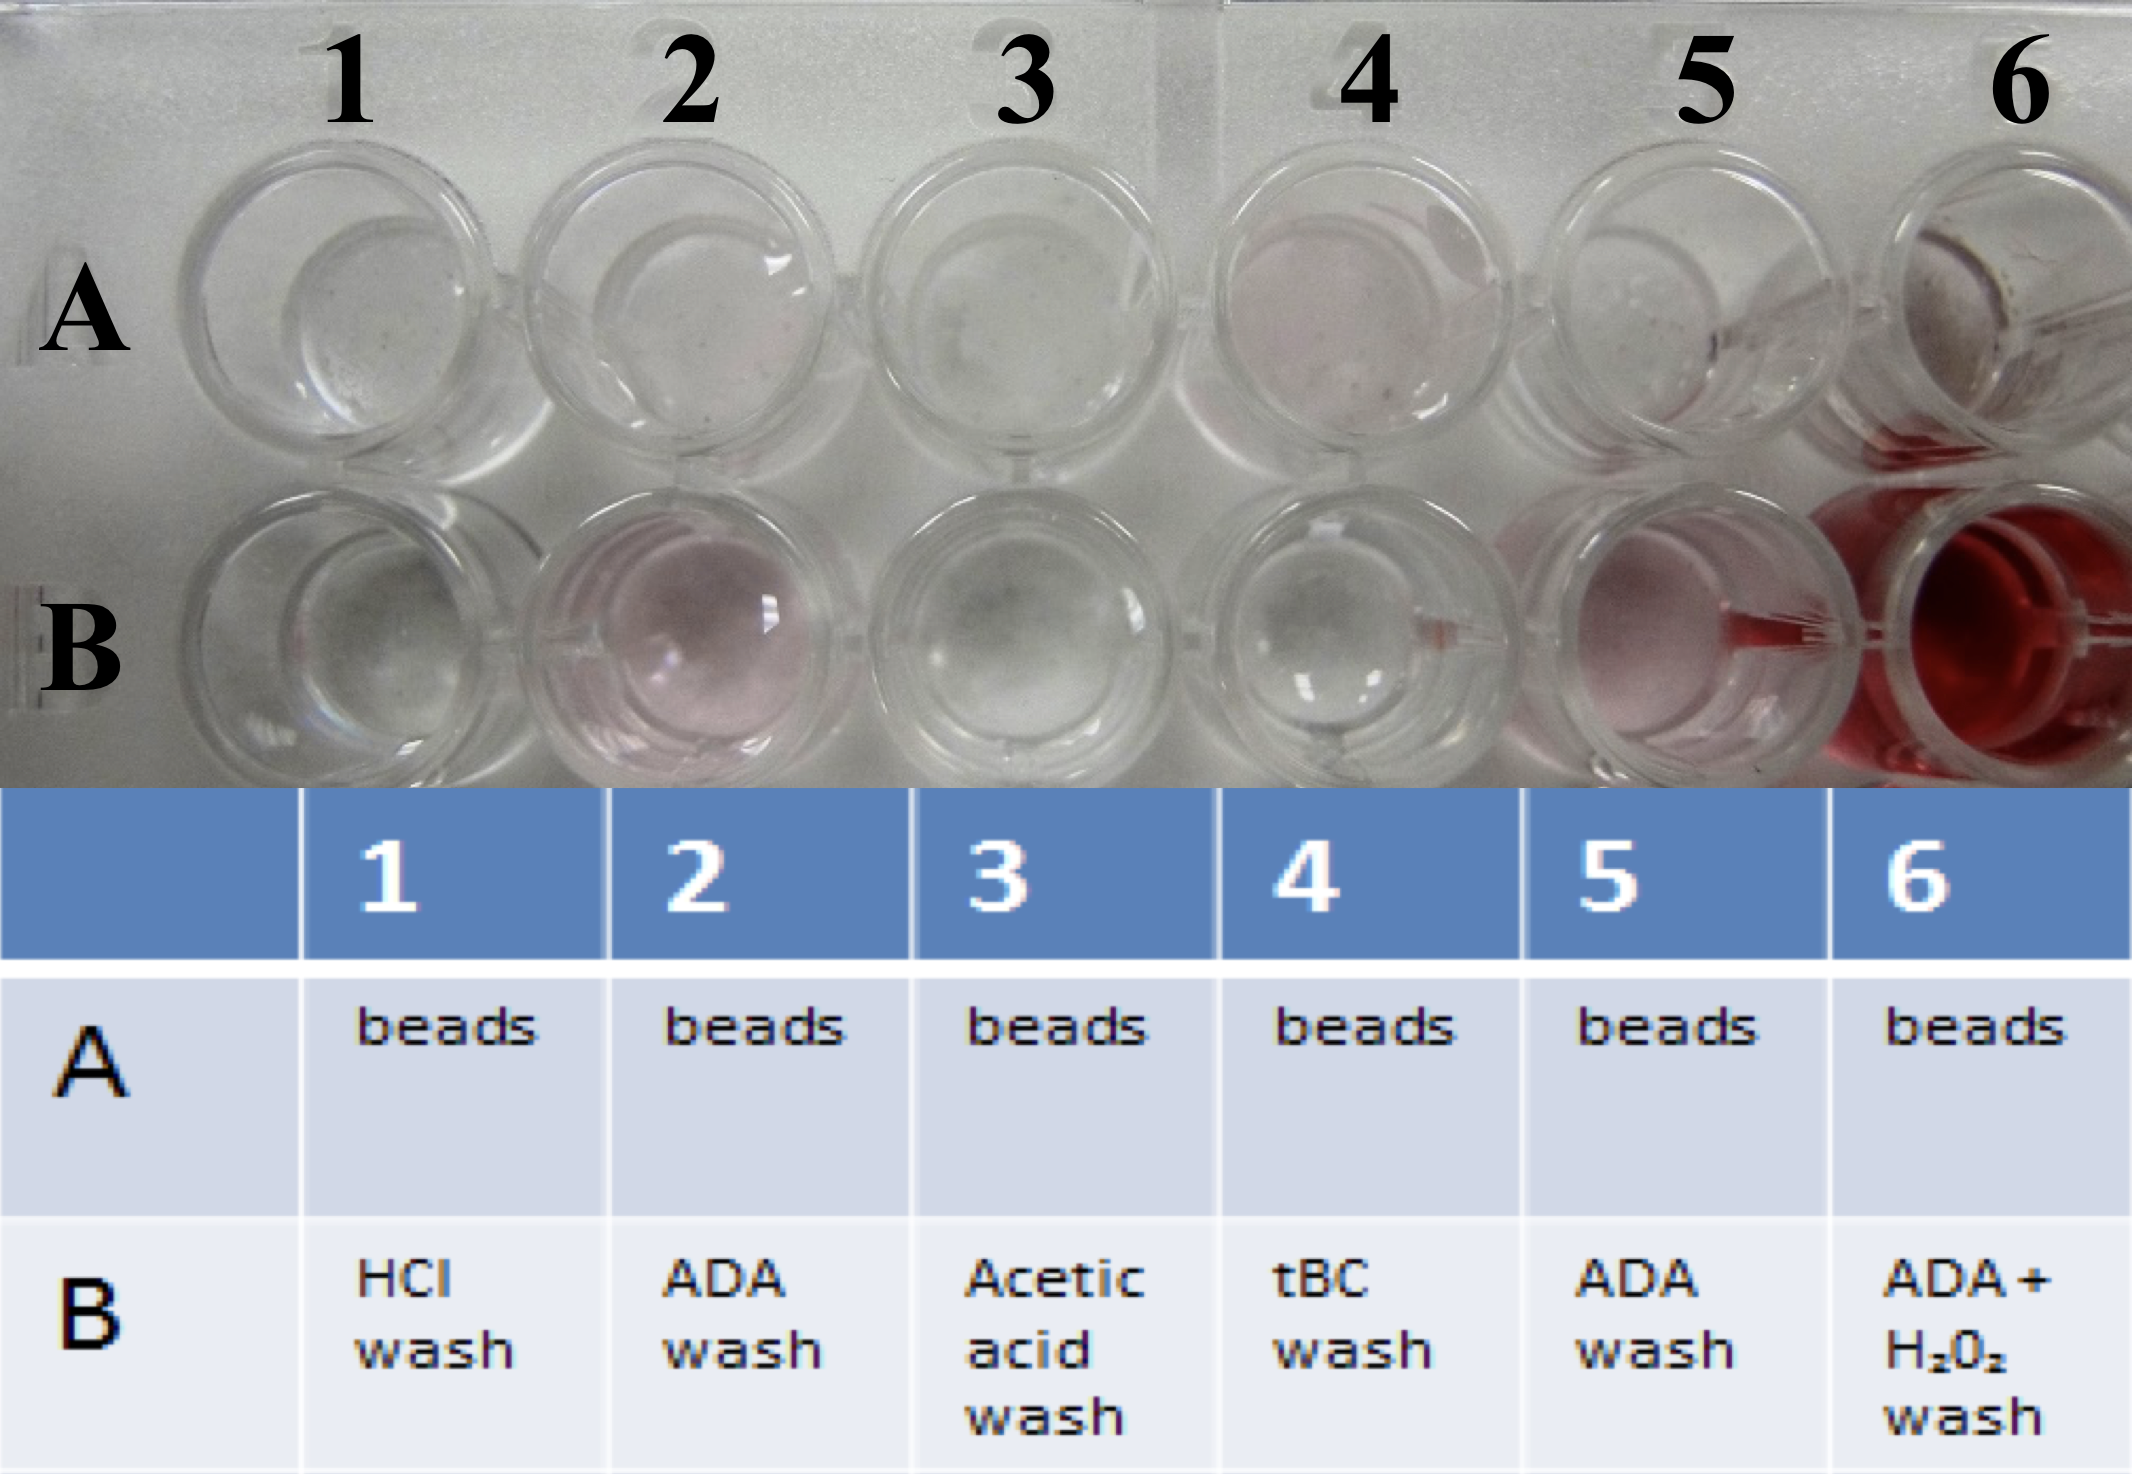 Figure 7. Microsphere assay. Table is a depiction of what was inserted into the wells. Row A is filled with the cemented microspheres. Each substrate solution, stated in the table, was injected in row A, than extracted and placed in row B. B2 and B5 showed laccase activity, and B6 showed peroxidase activity.